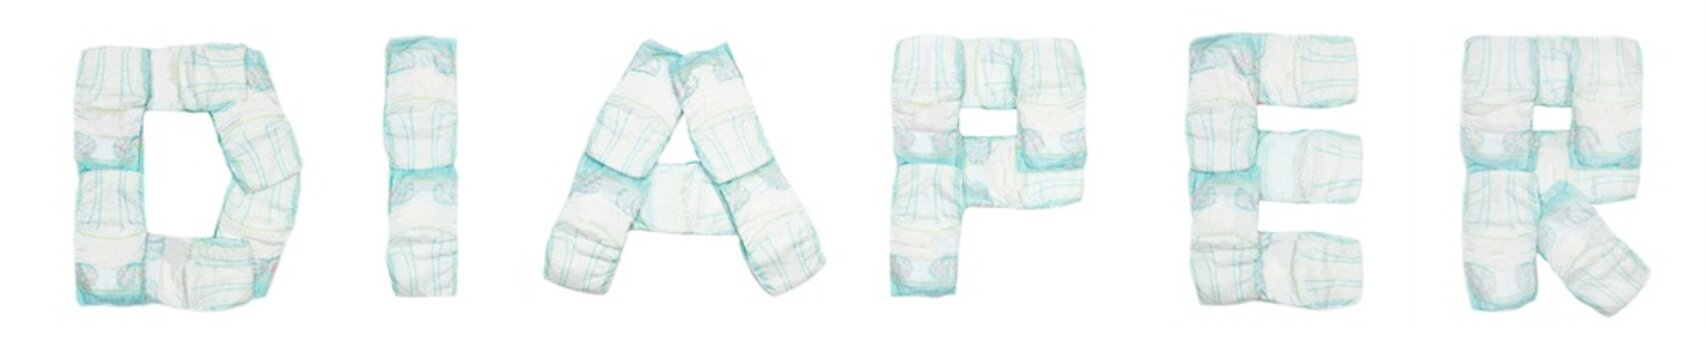 Word diaper laid out baby diapers on a white background, isolate, napkin, inscription